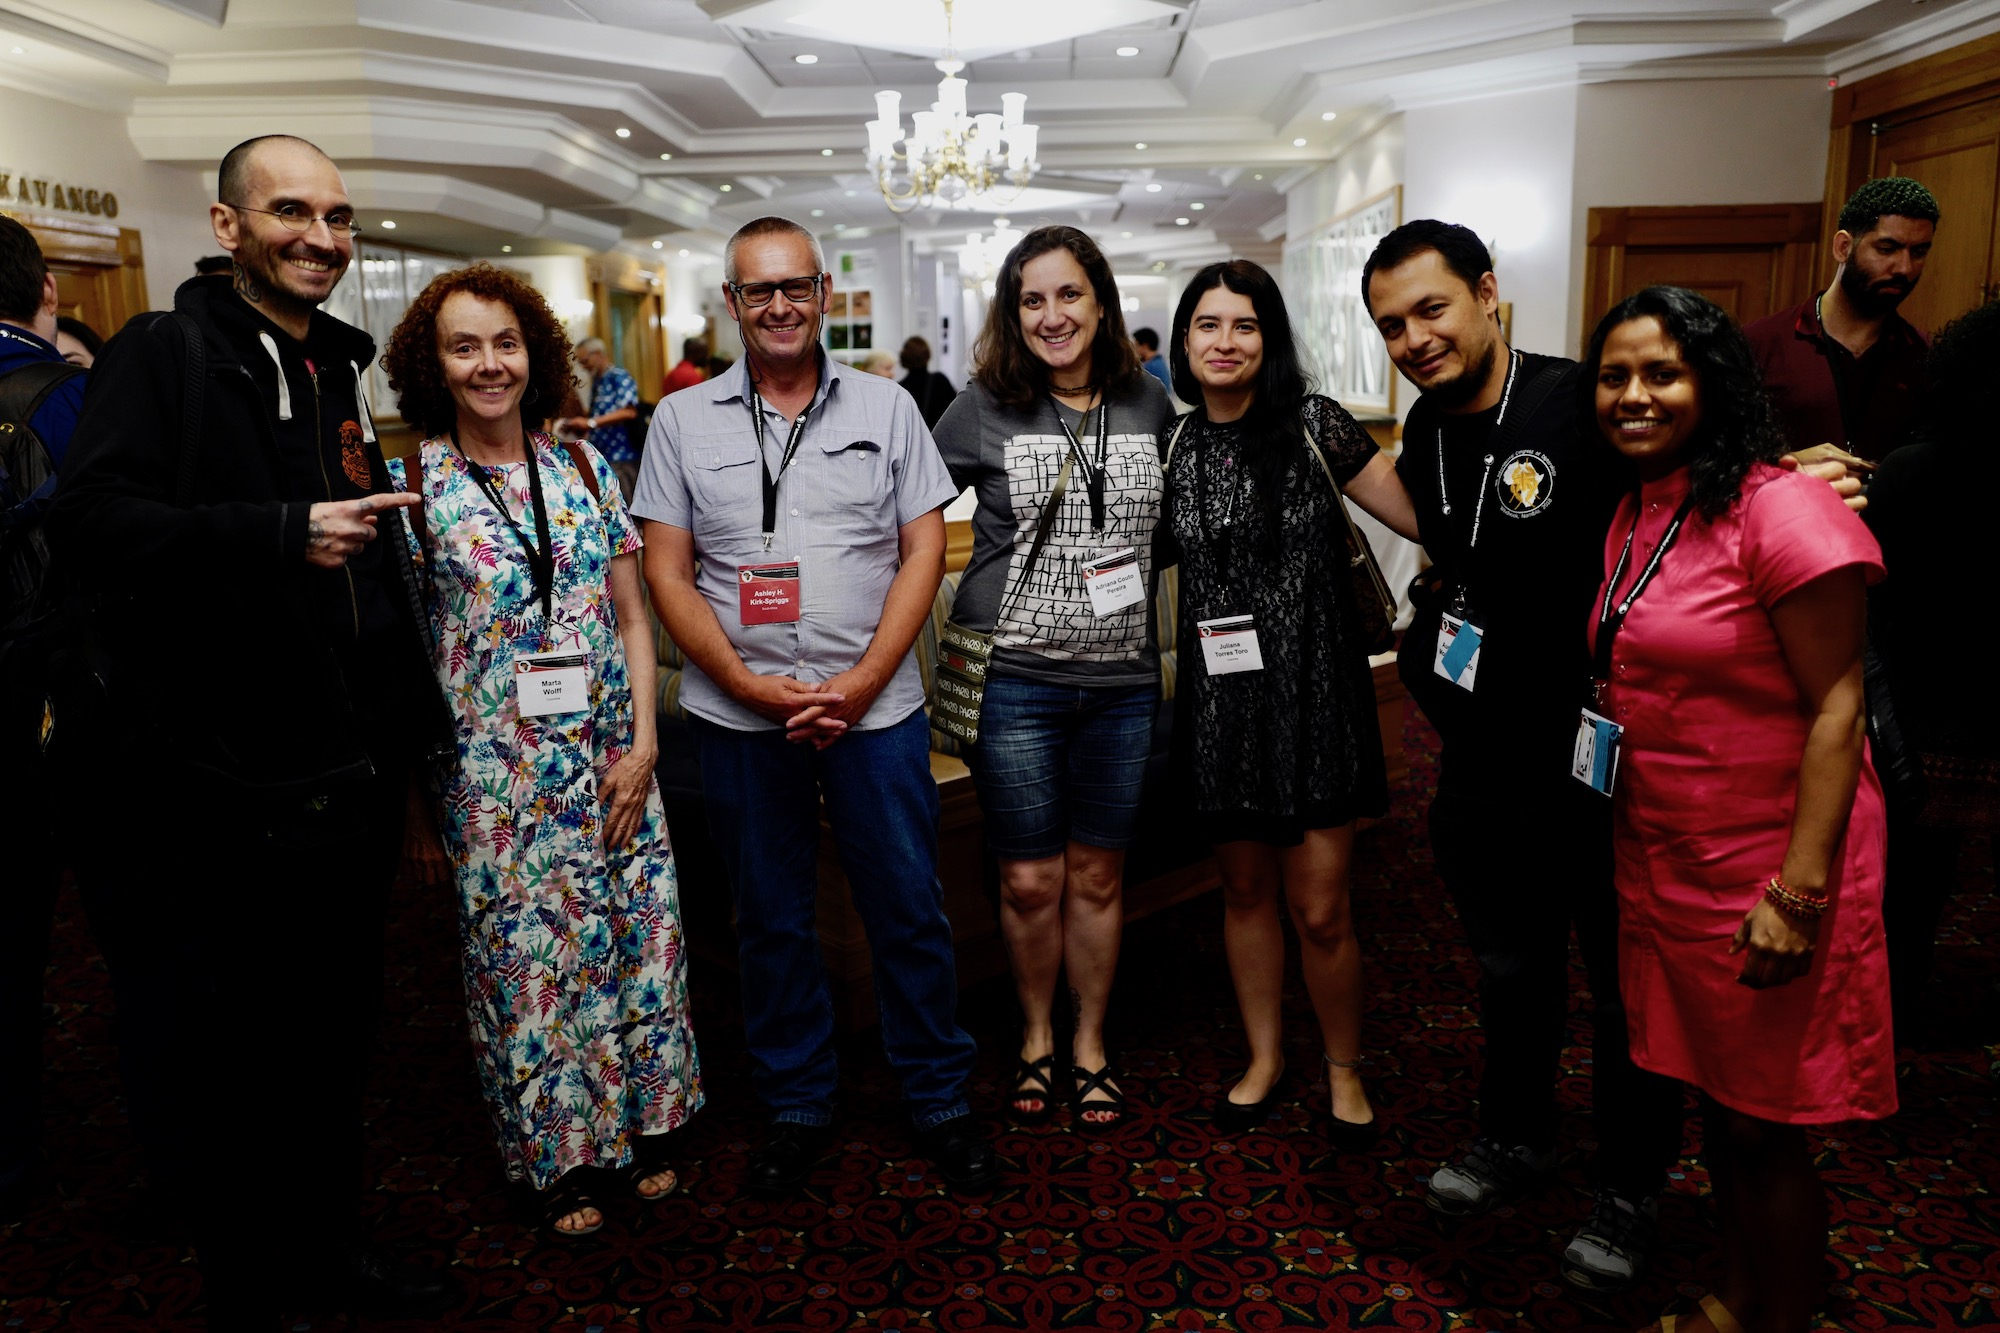 mark_benecke_ICD9_dipterology_world_congress_windhoeck_namibia - 162.jpg